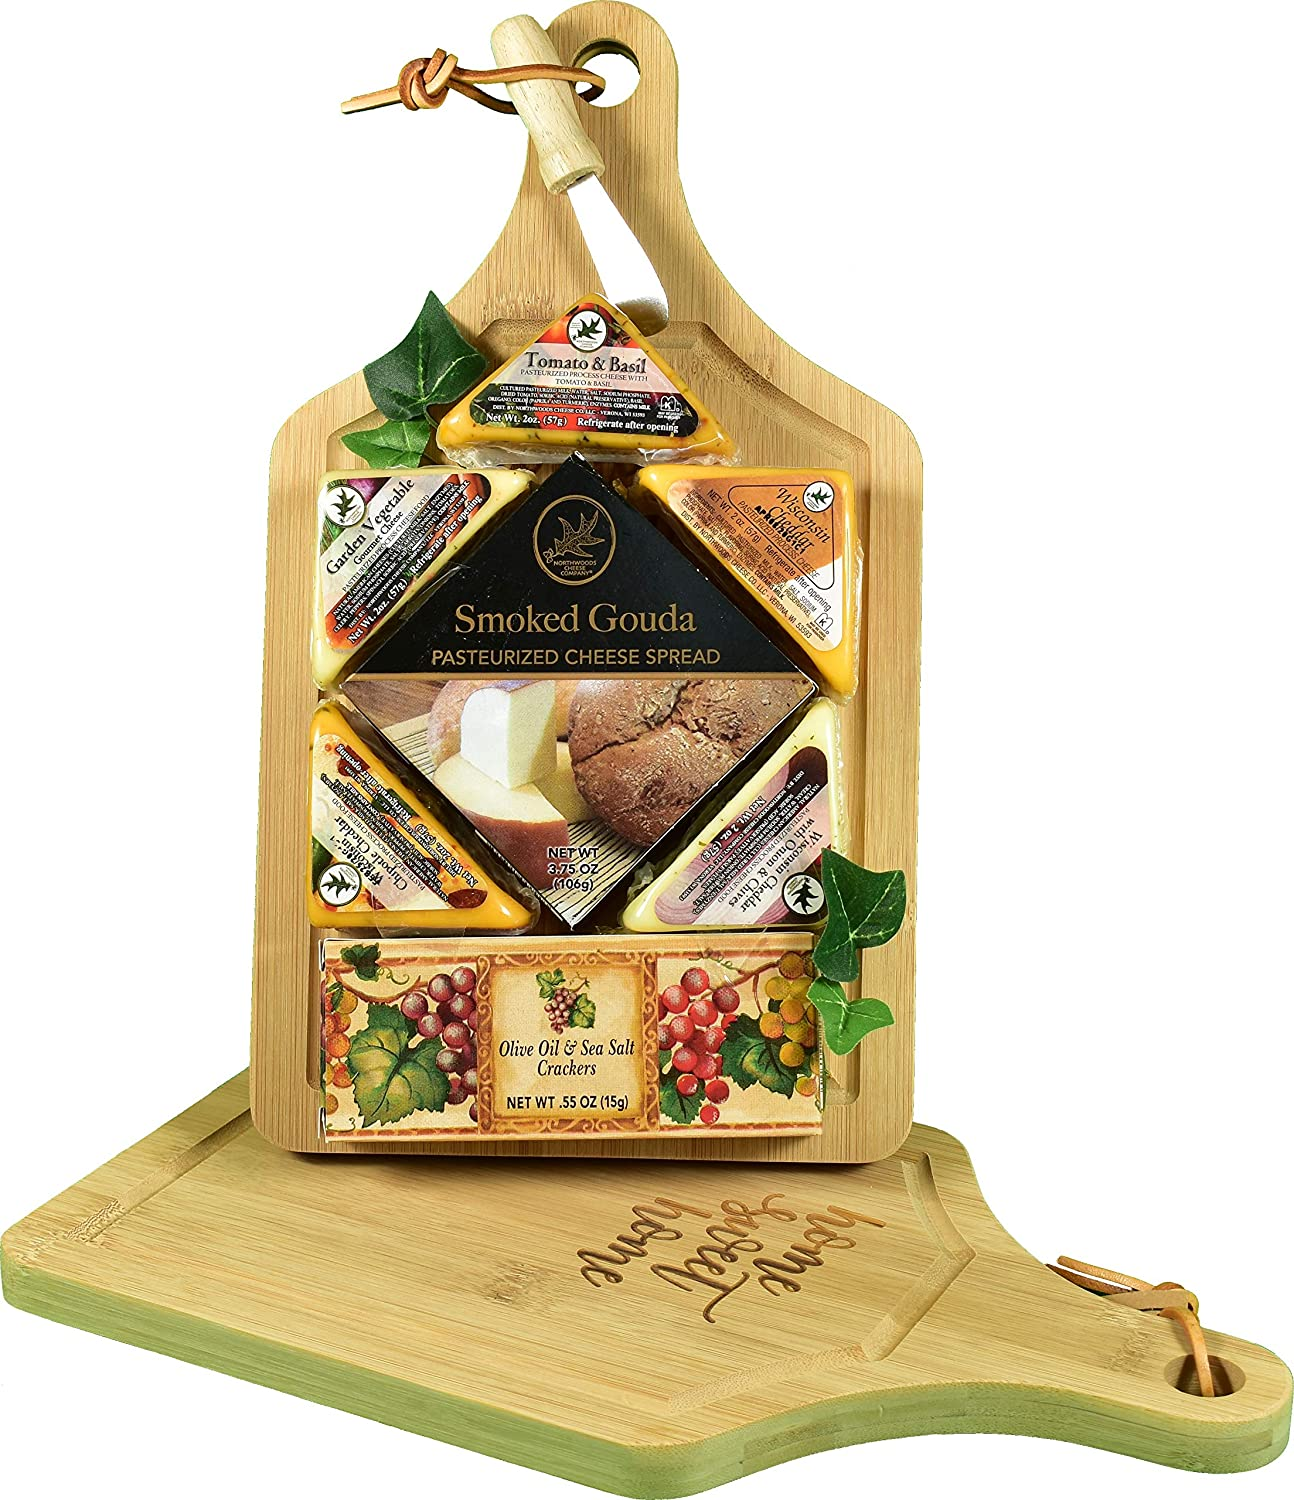 Gift Basket Village Sweet Home Sampler, Cheese and Crackers Cutting Board Gift with Deluxe Cutting Board, Cheese, Gourmet Crackers and Spreader, 3 Pounds